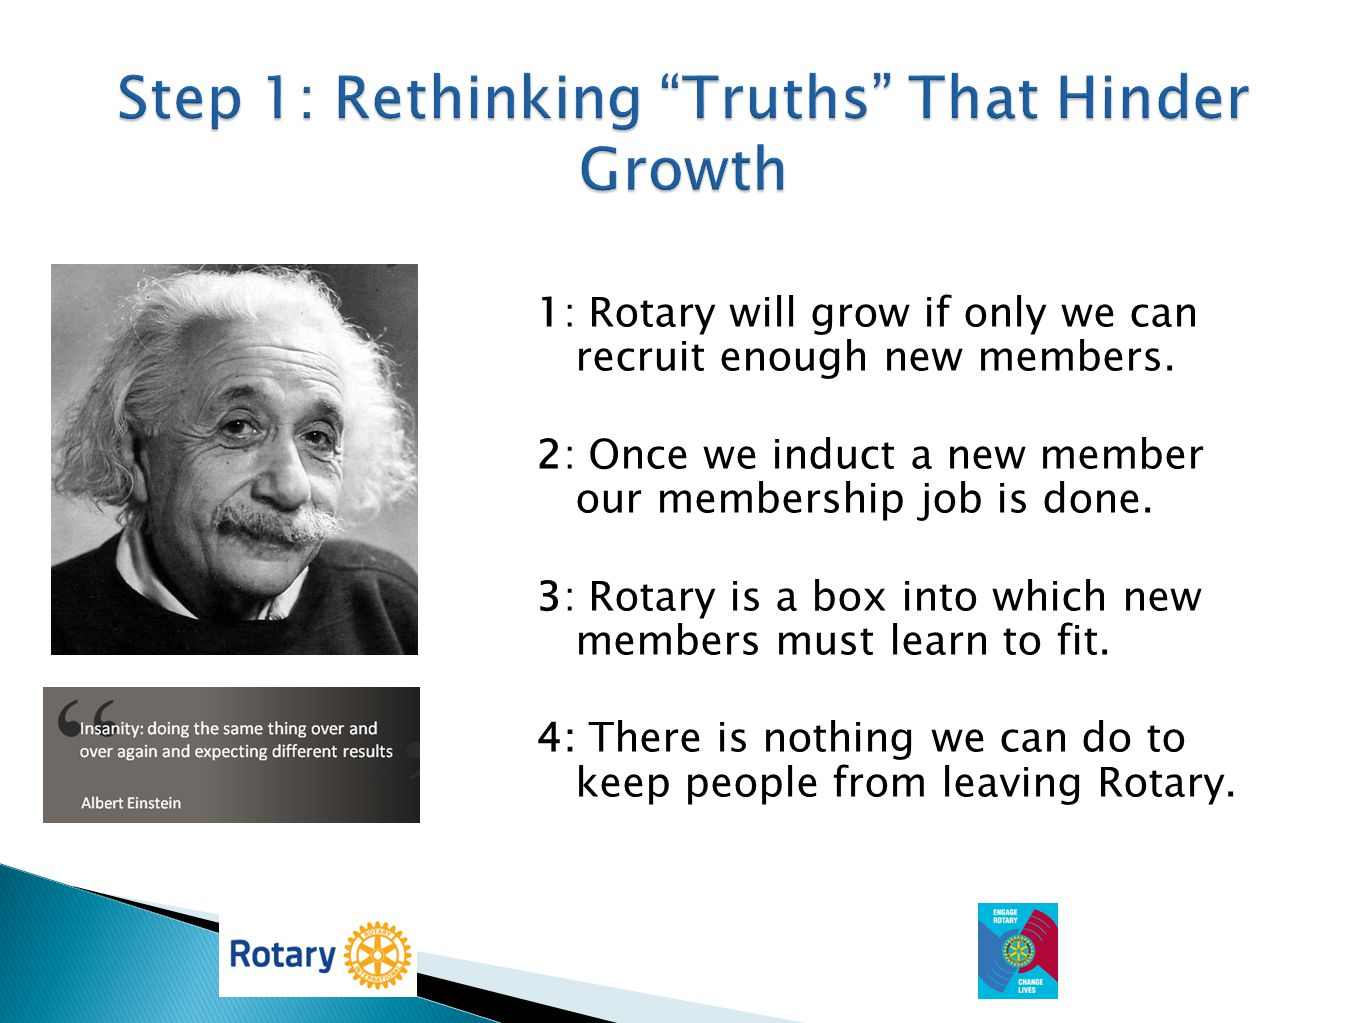 Step 1: Rethinking Truths That Hinder Growth